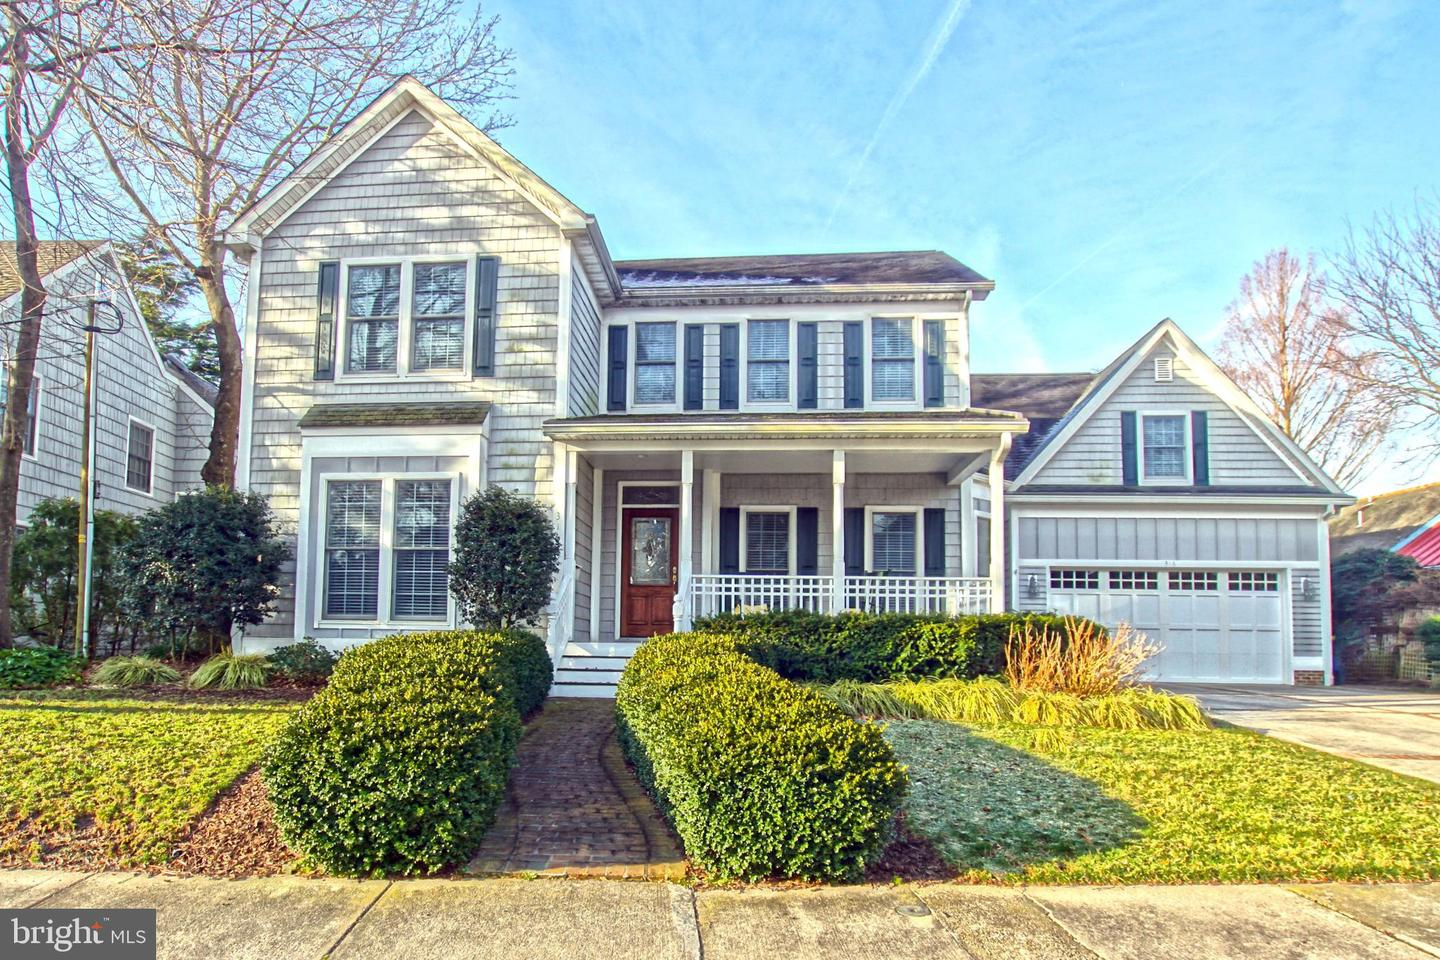 DESU133908-301567962768-2019-07-31-16-22-39 316 W 3rd St | Lewes, DE Real Estate For Sale | MLS# Desu133908  - Lee Ann Group